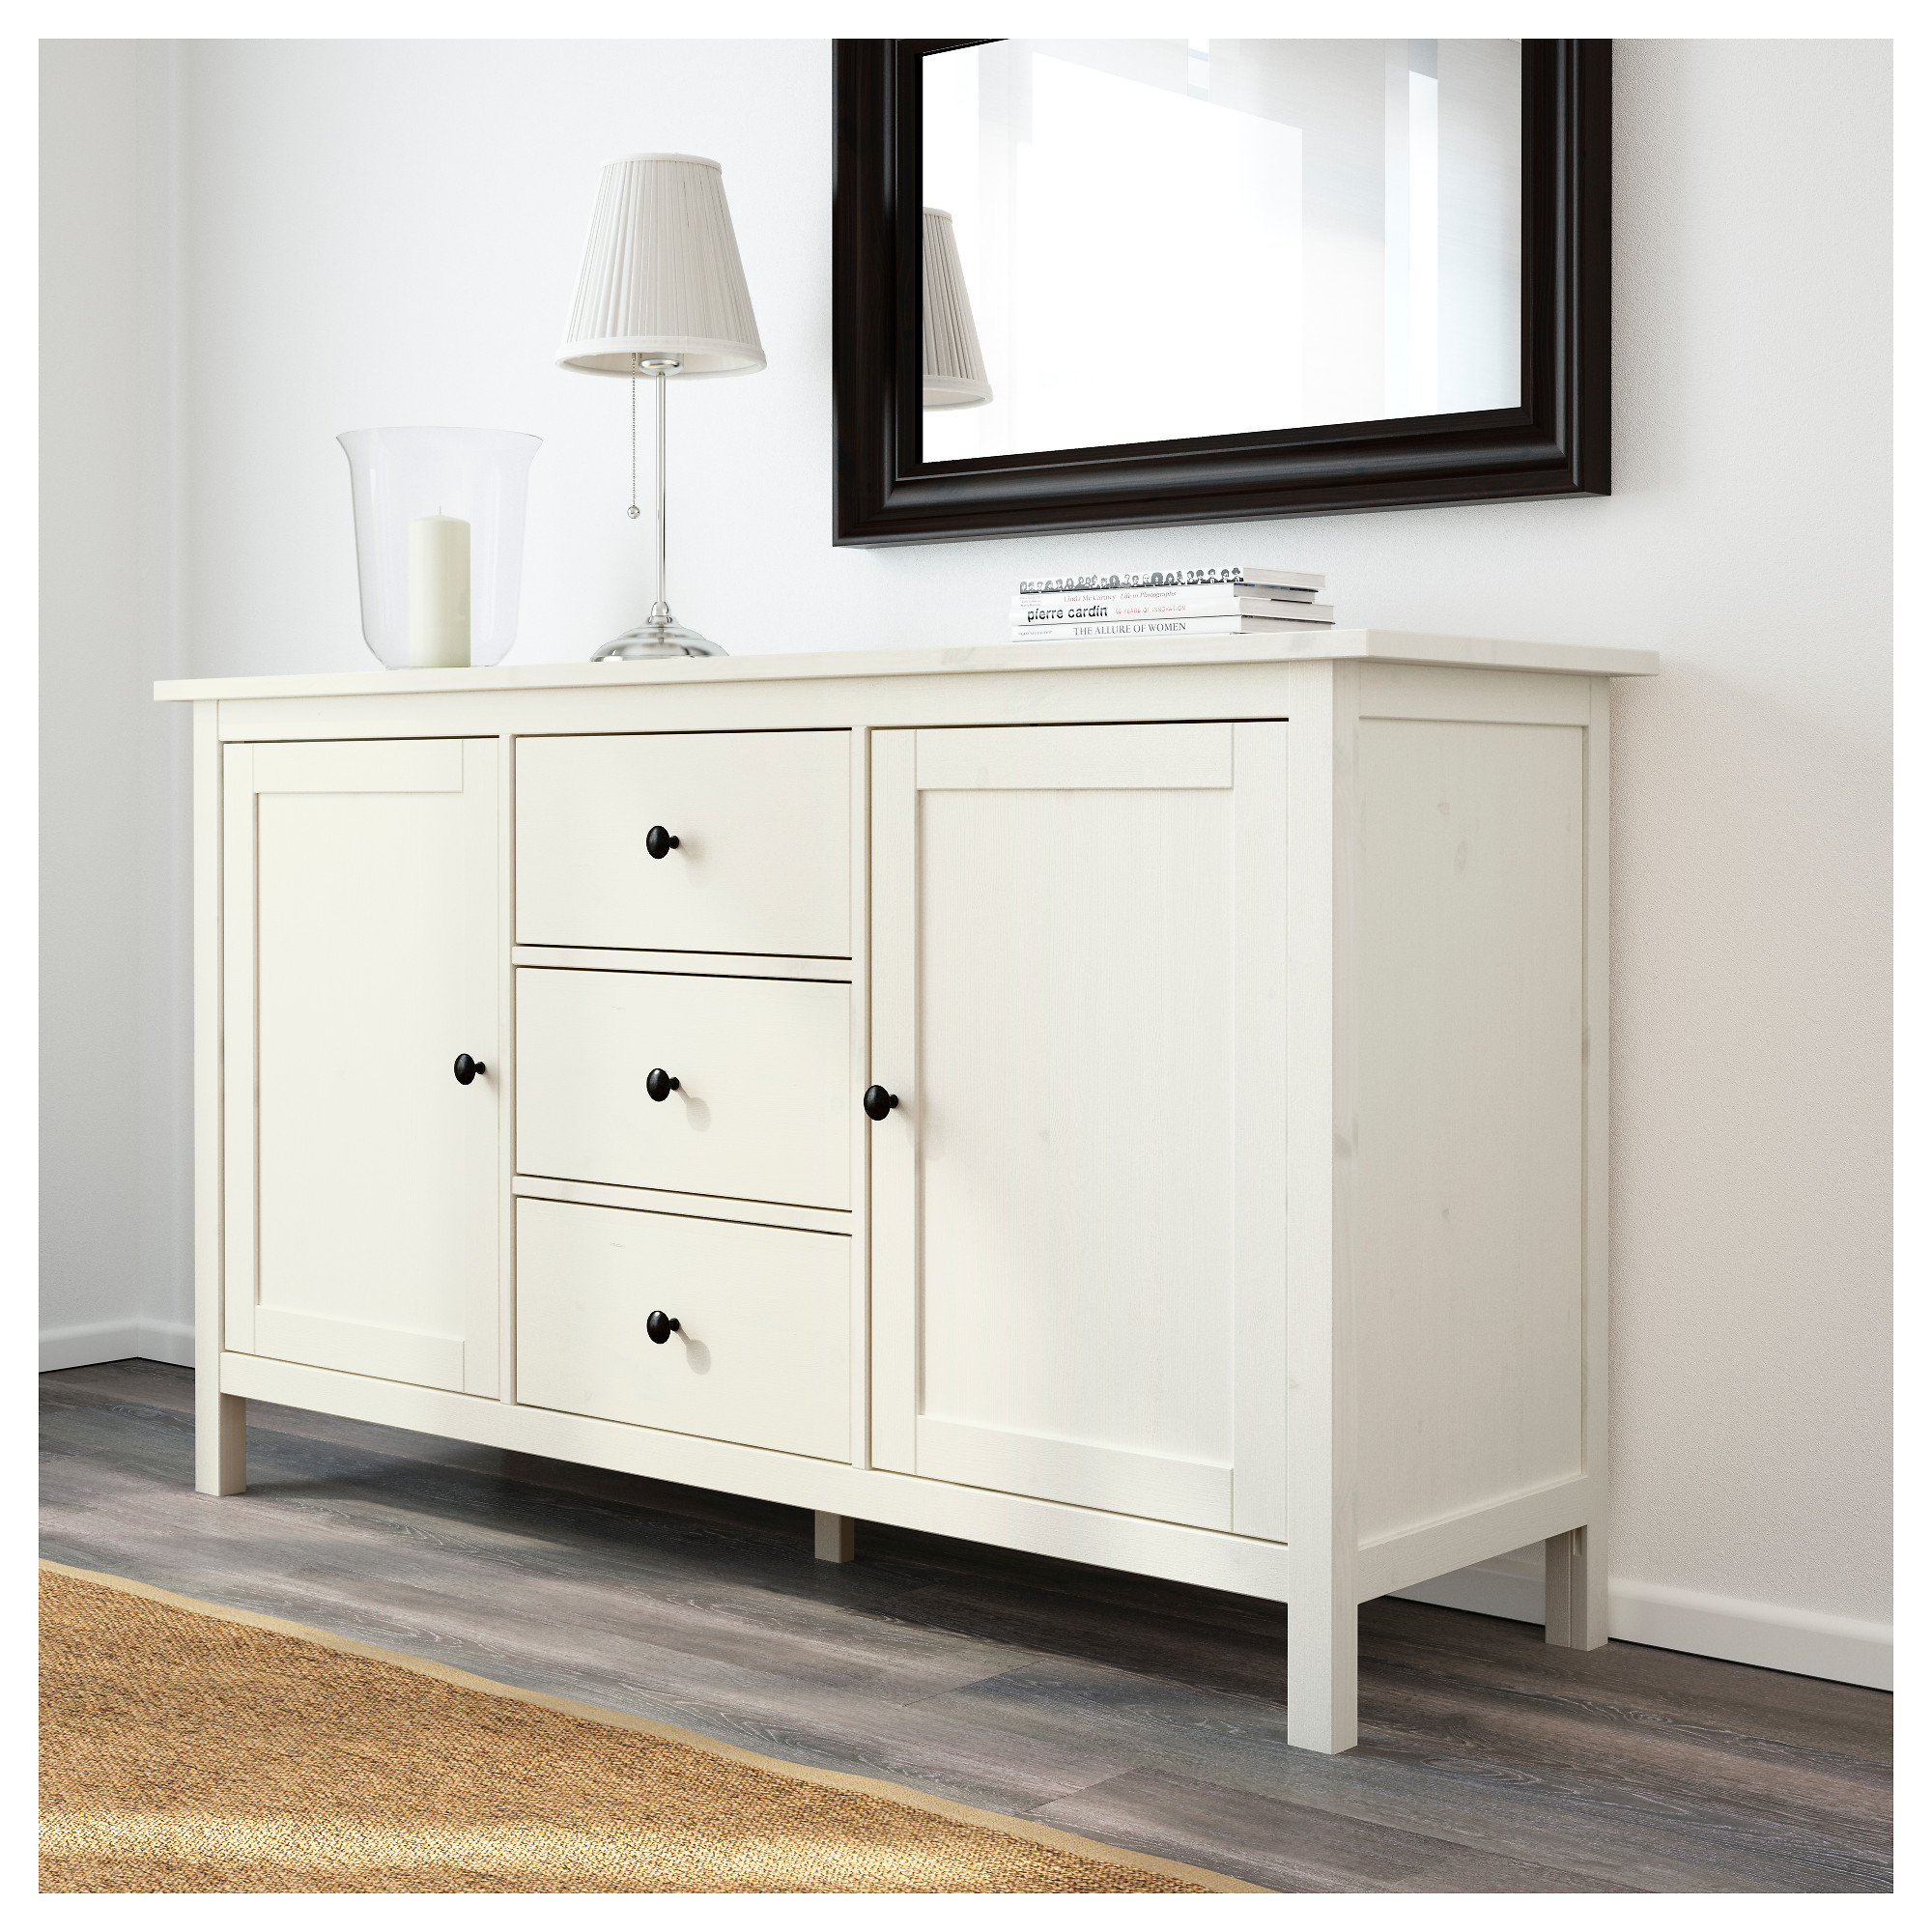 hemnes sideboard - light brown - ikea